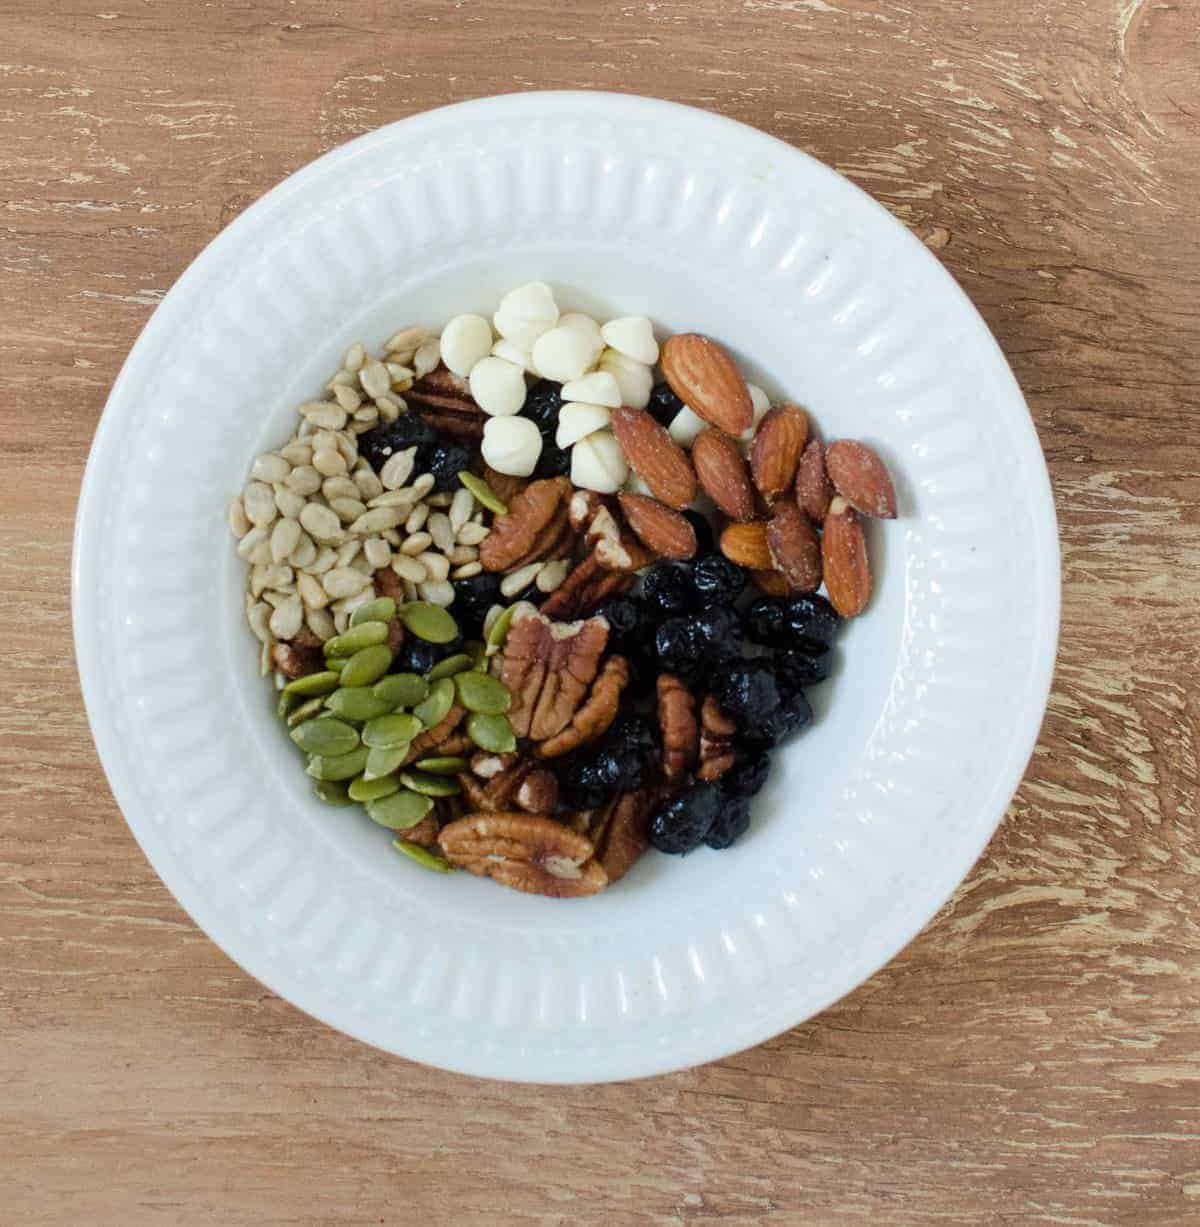 Trail Mix - Dried blueberries, salted almonds, pecans, pumpkin seeds, sunflower seeds, and white chocolate chips.